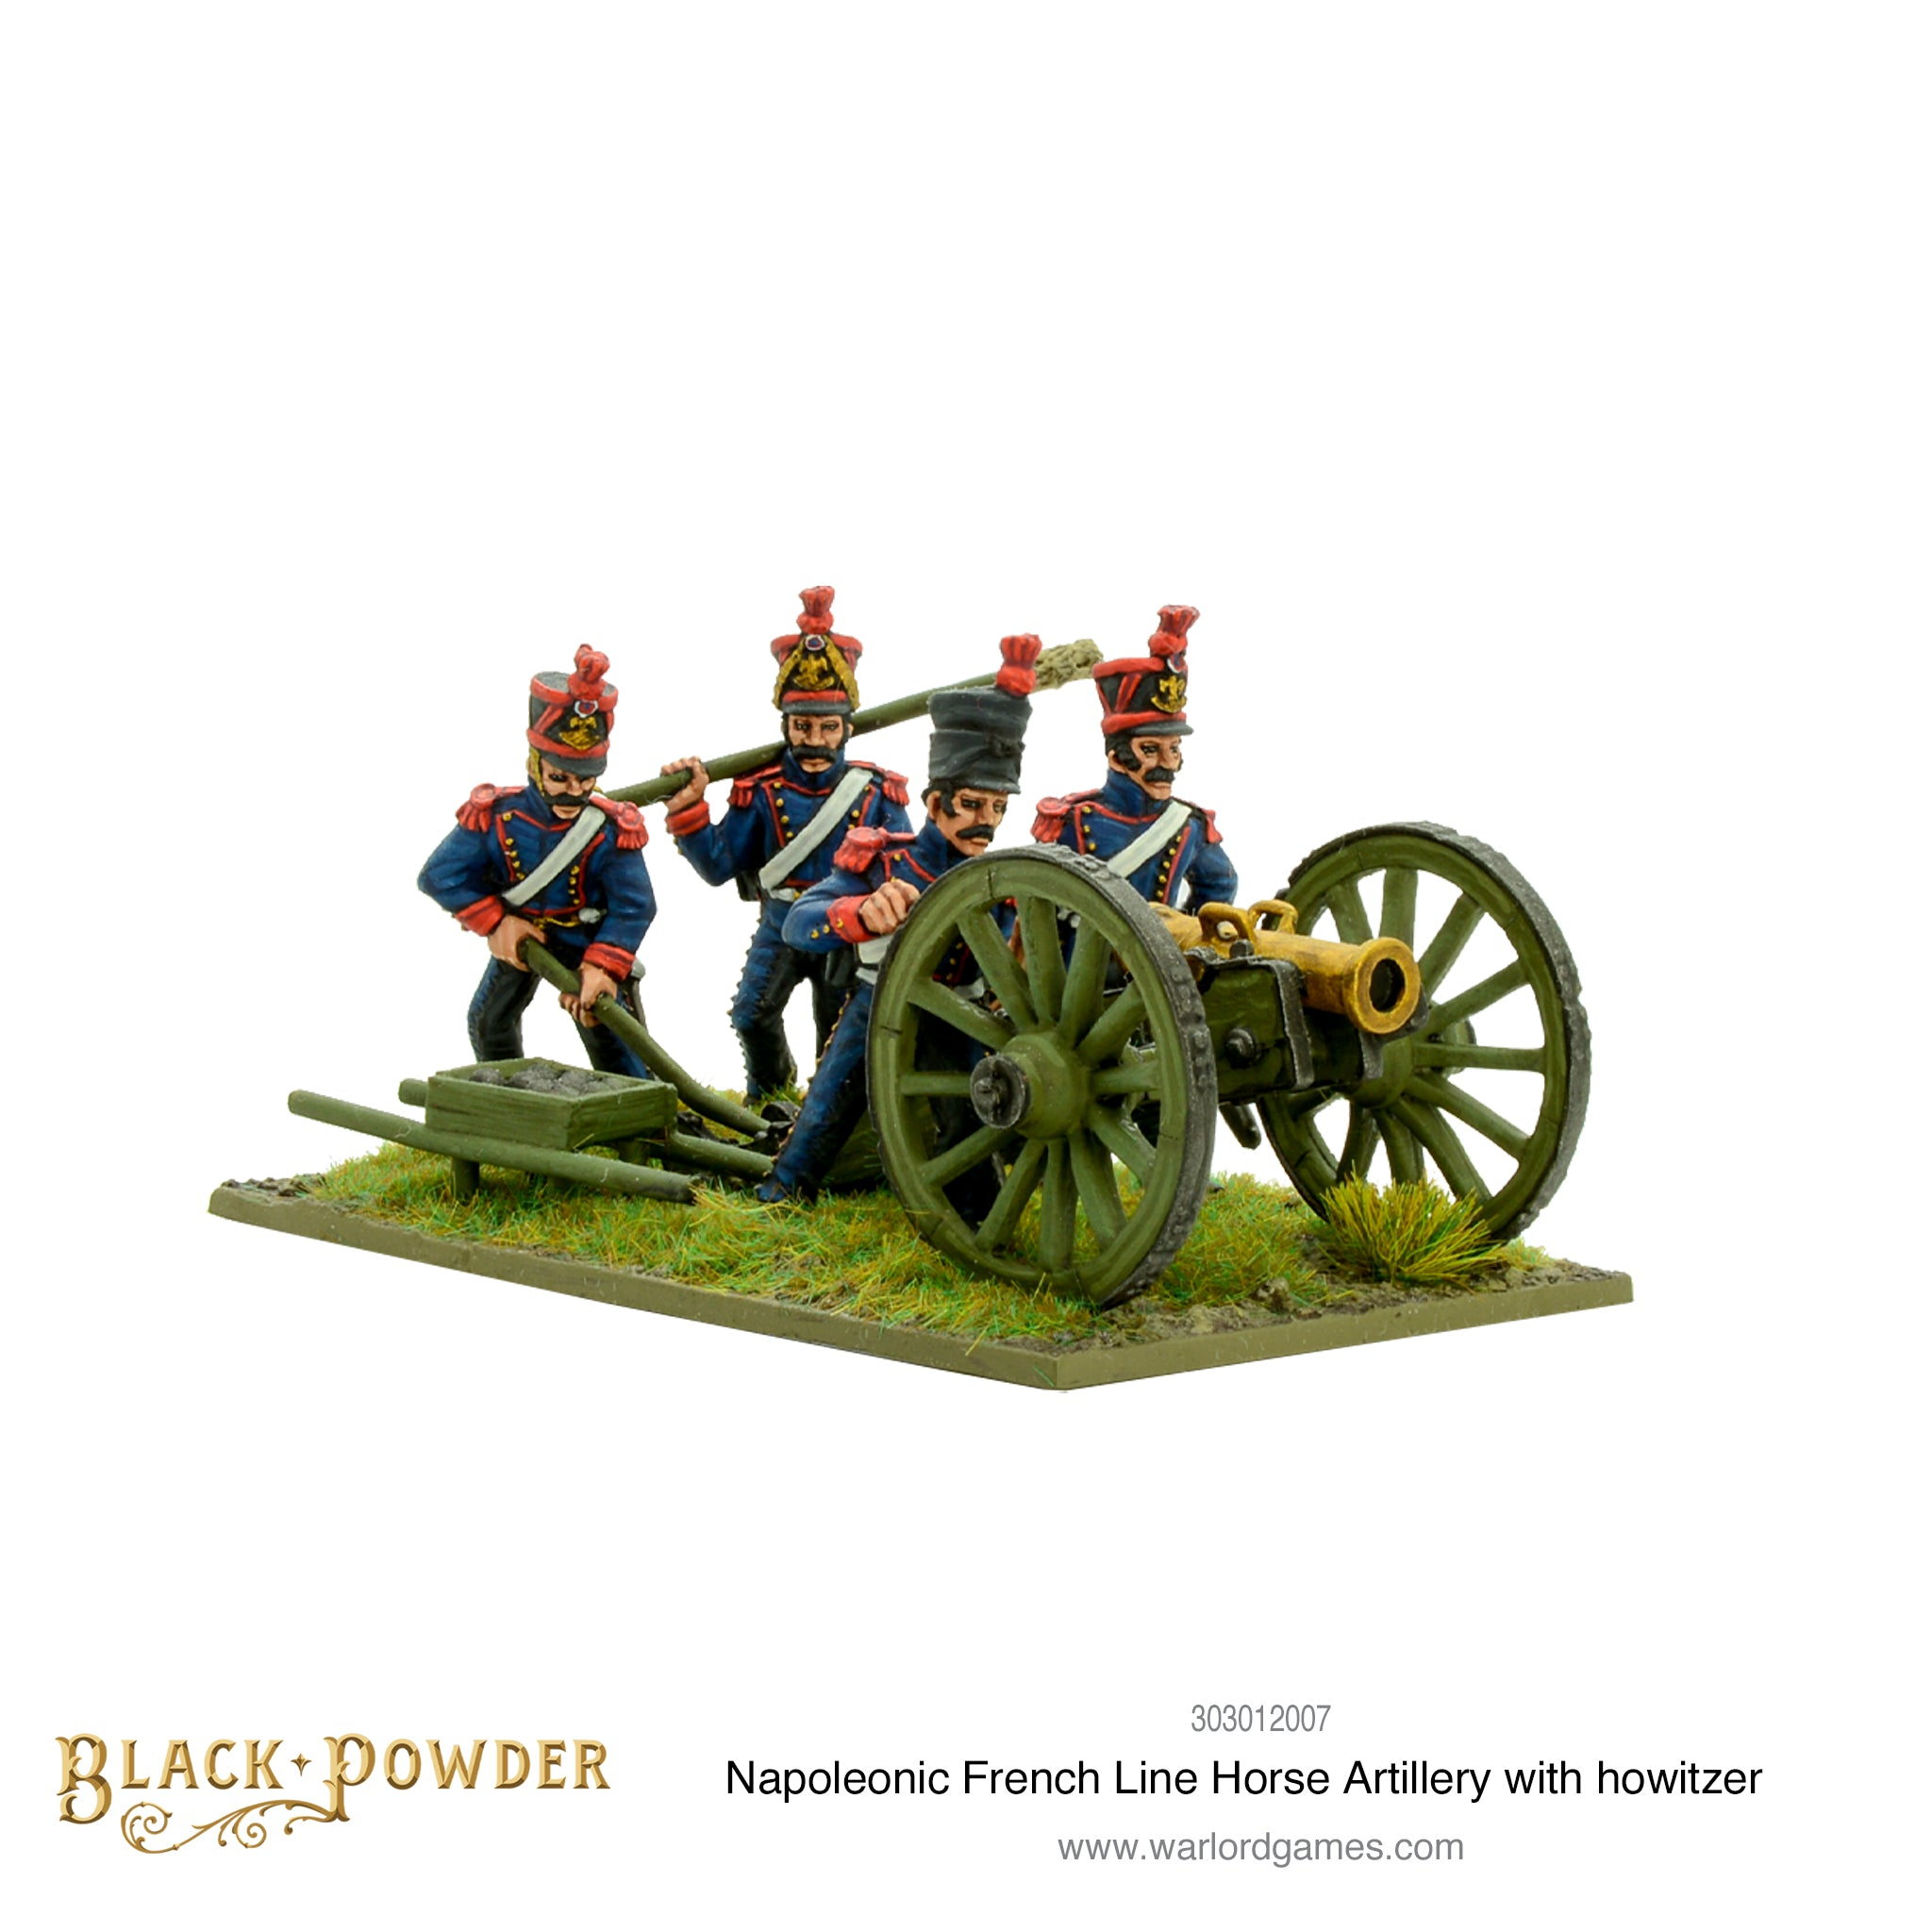 Napoleonic French Line Horse Artillery with howitzer